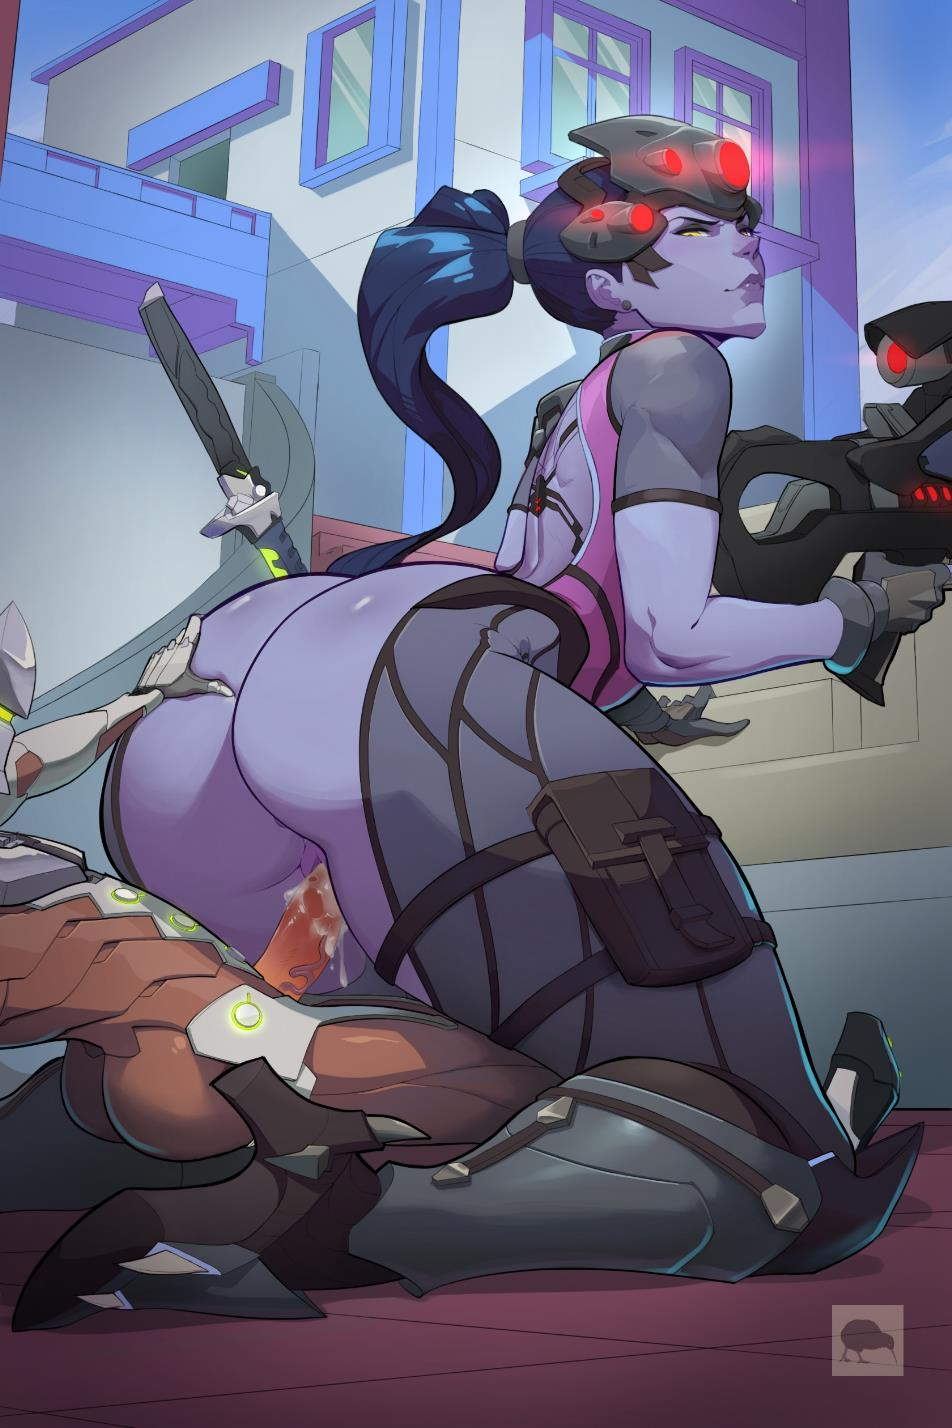 2852555 - Genji_Shimada NobuONE Overlook Widowmaker